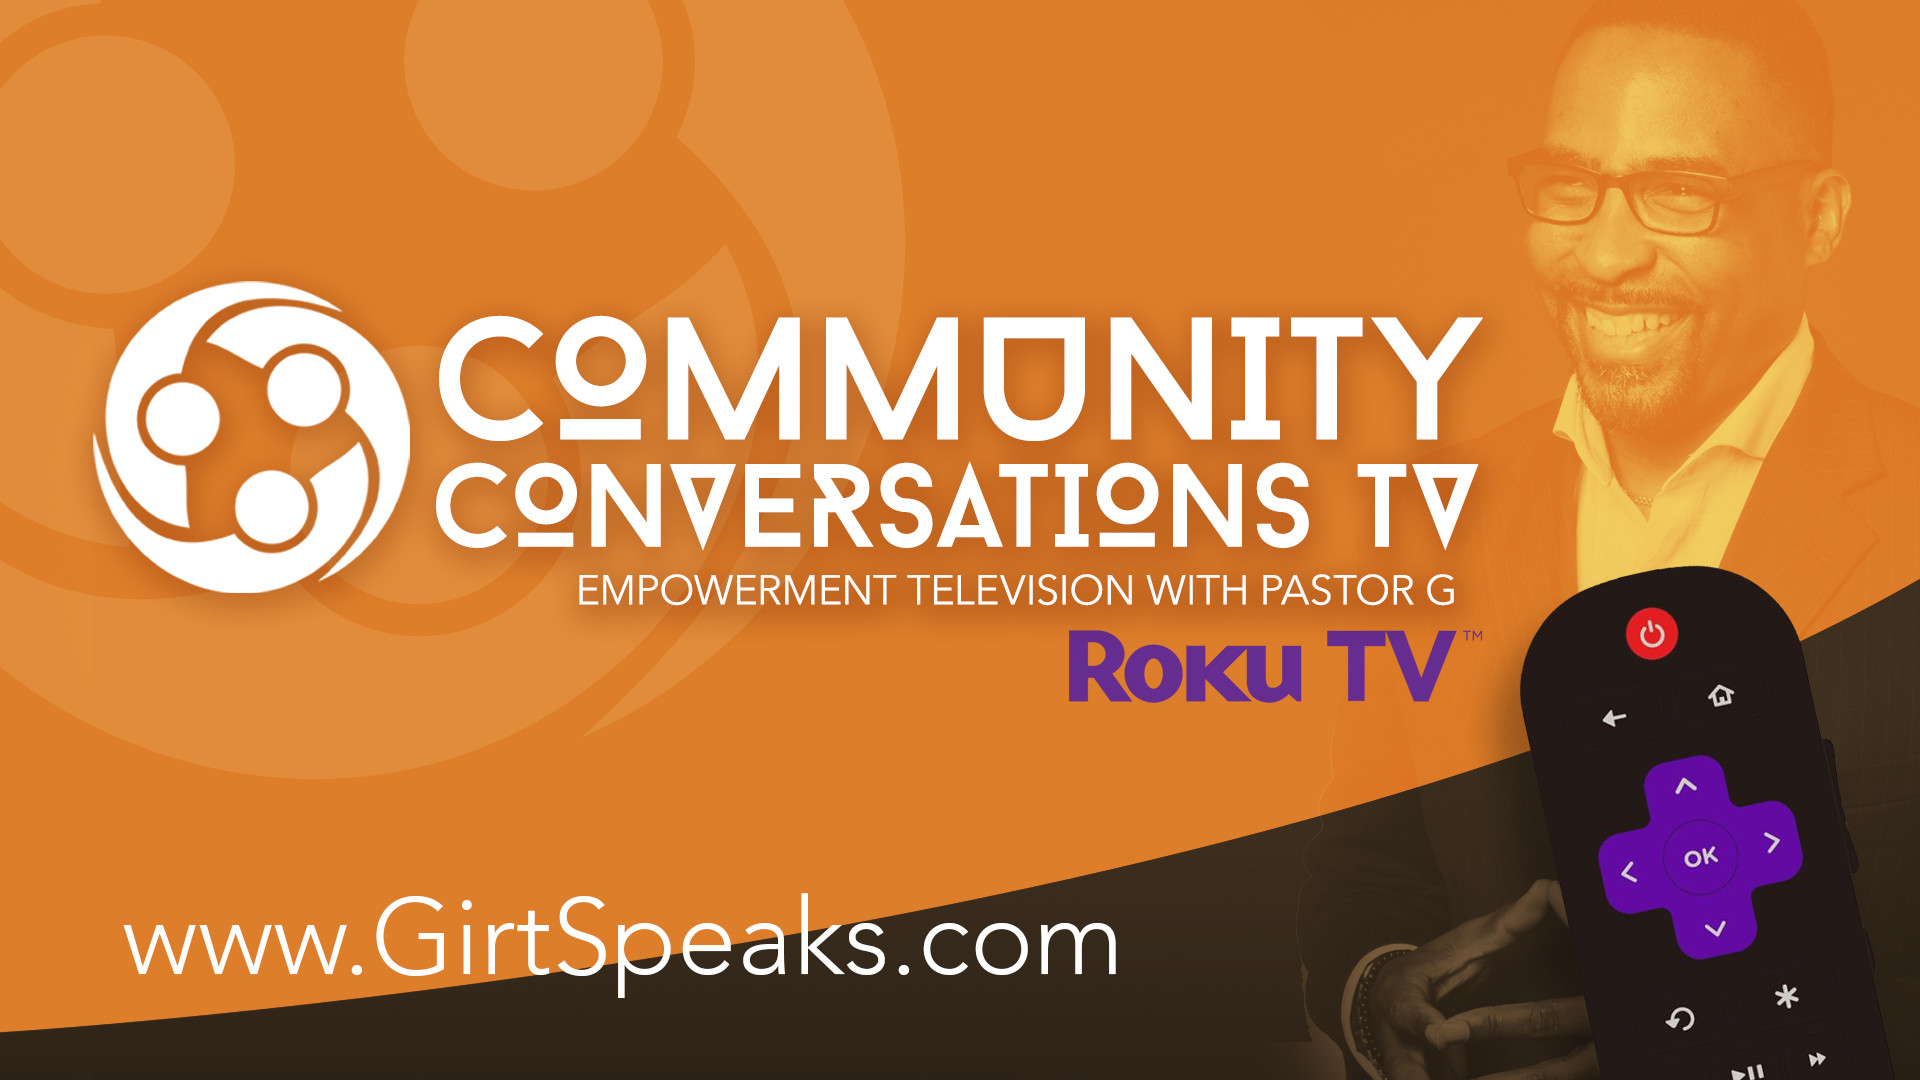 Community-Conversations-TV-screen-Shot-w